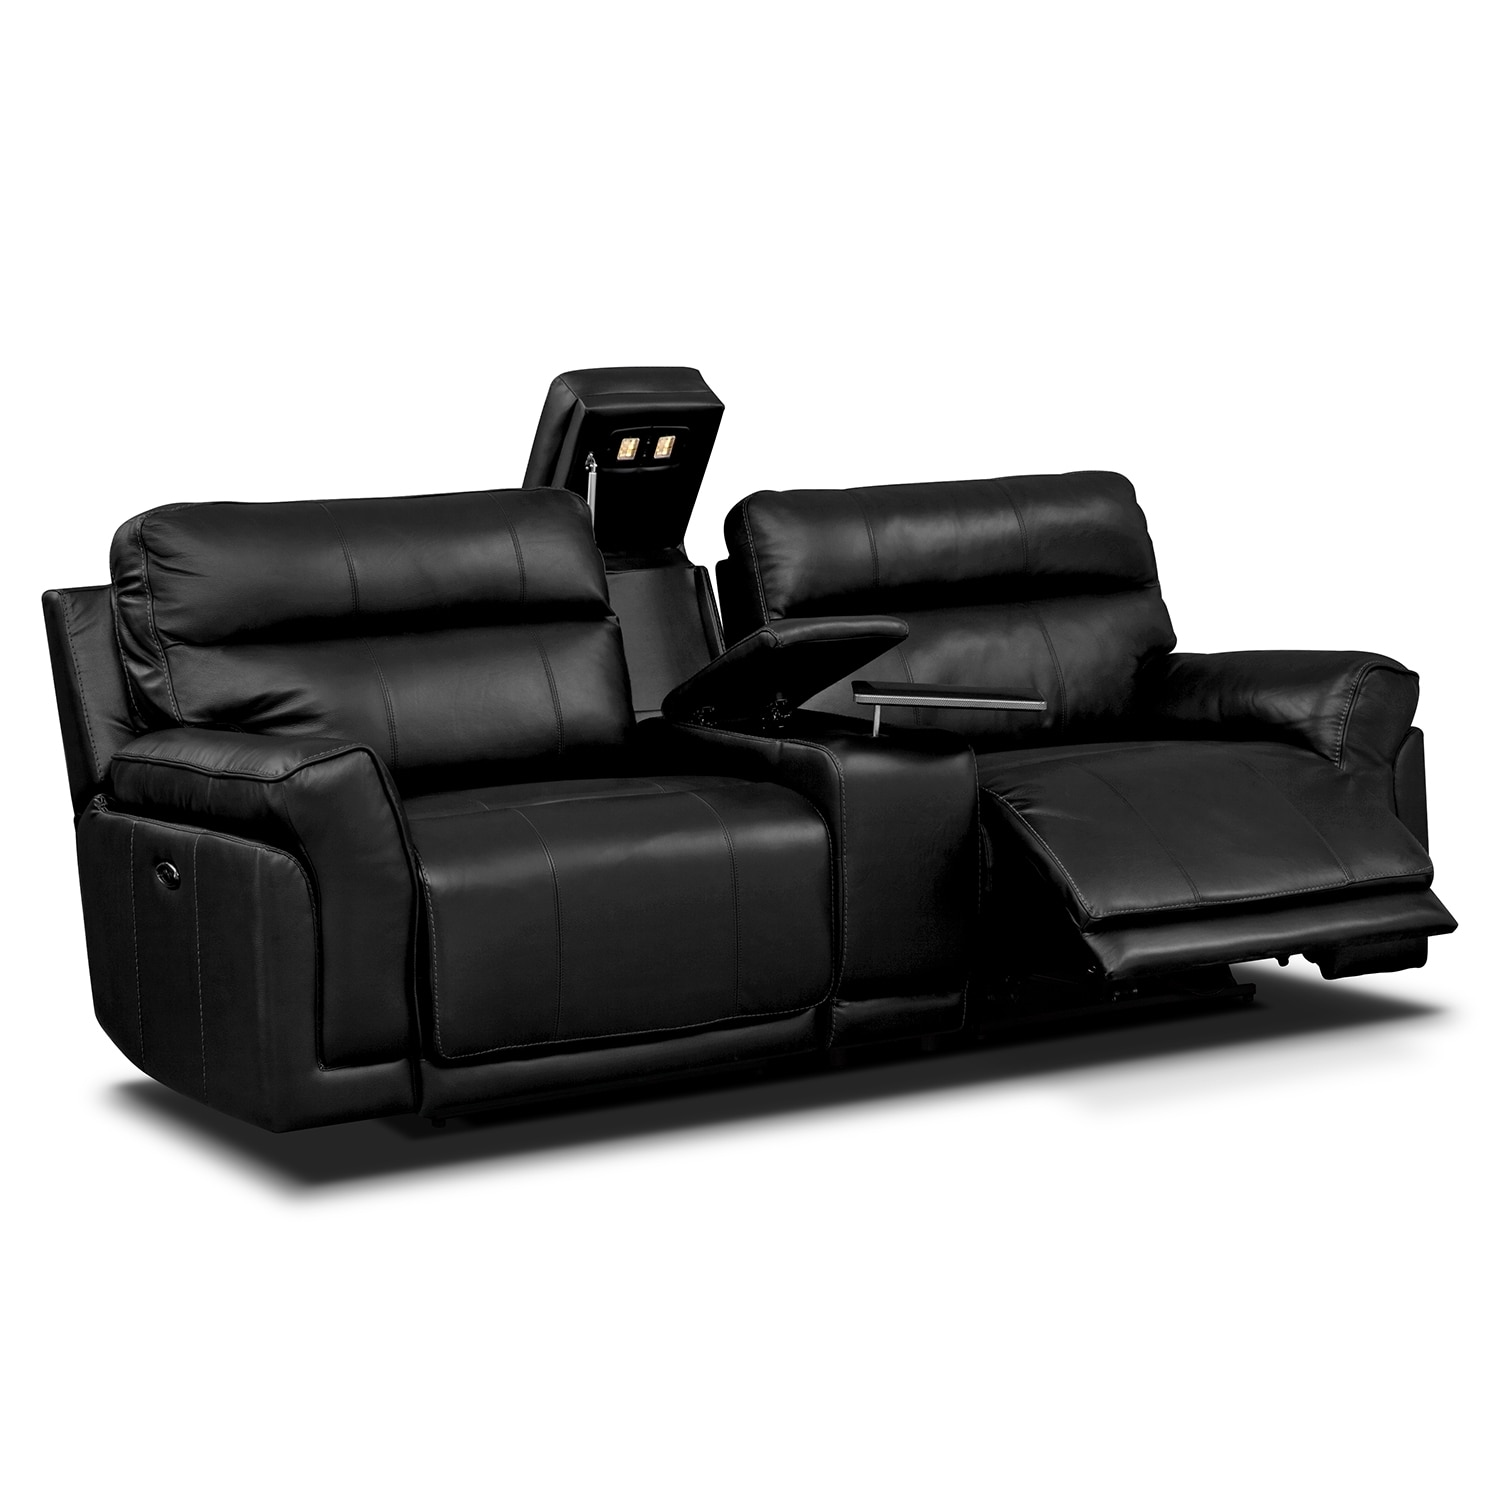 Antonio Black Power Reclining Sofa With Console